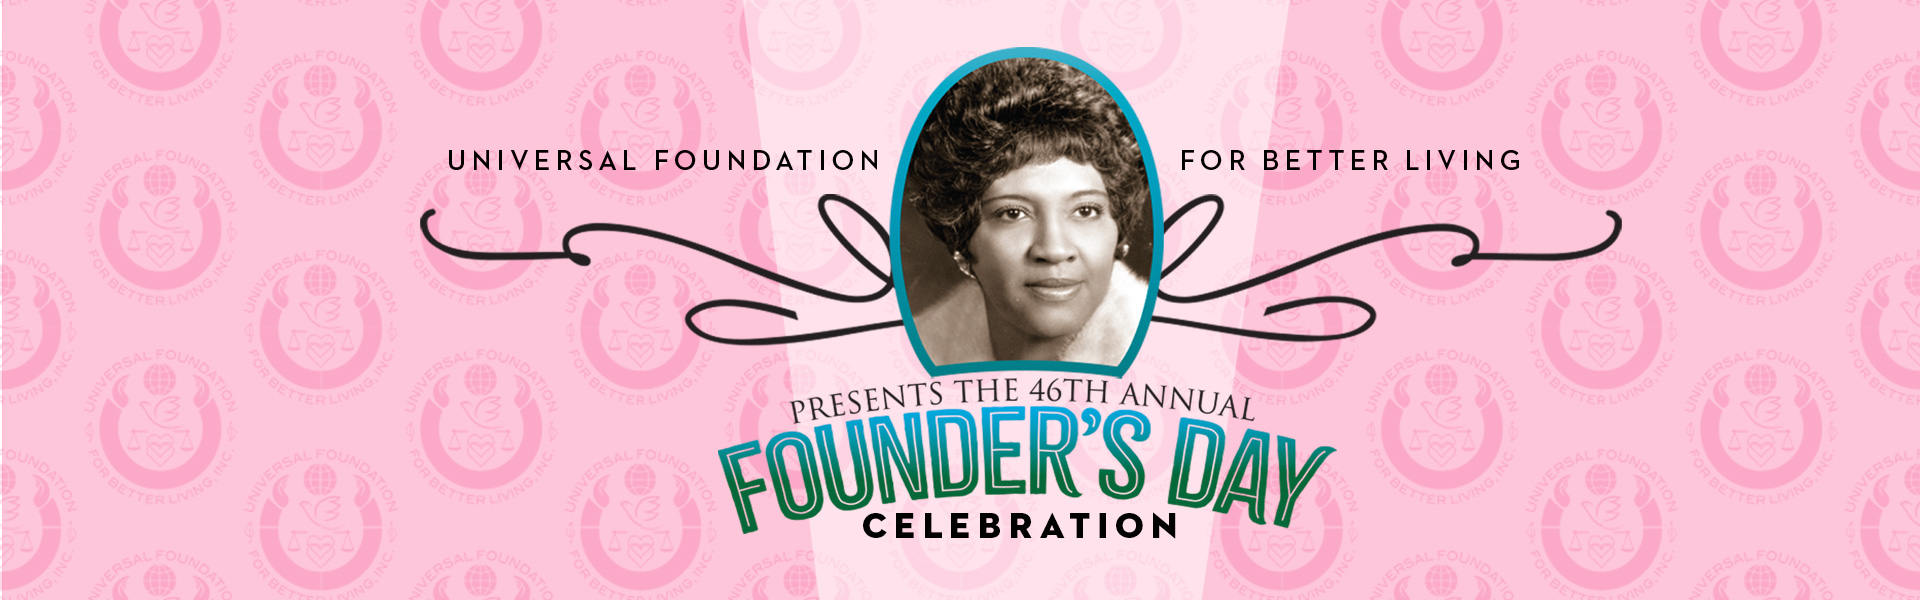 Founder's Day banner